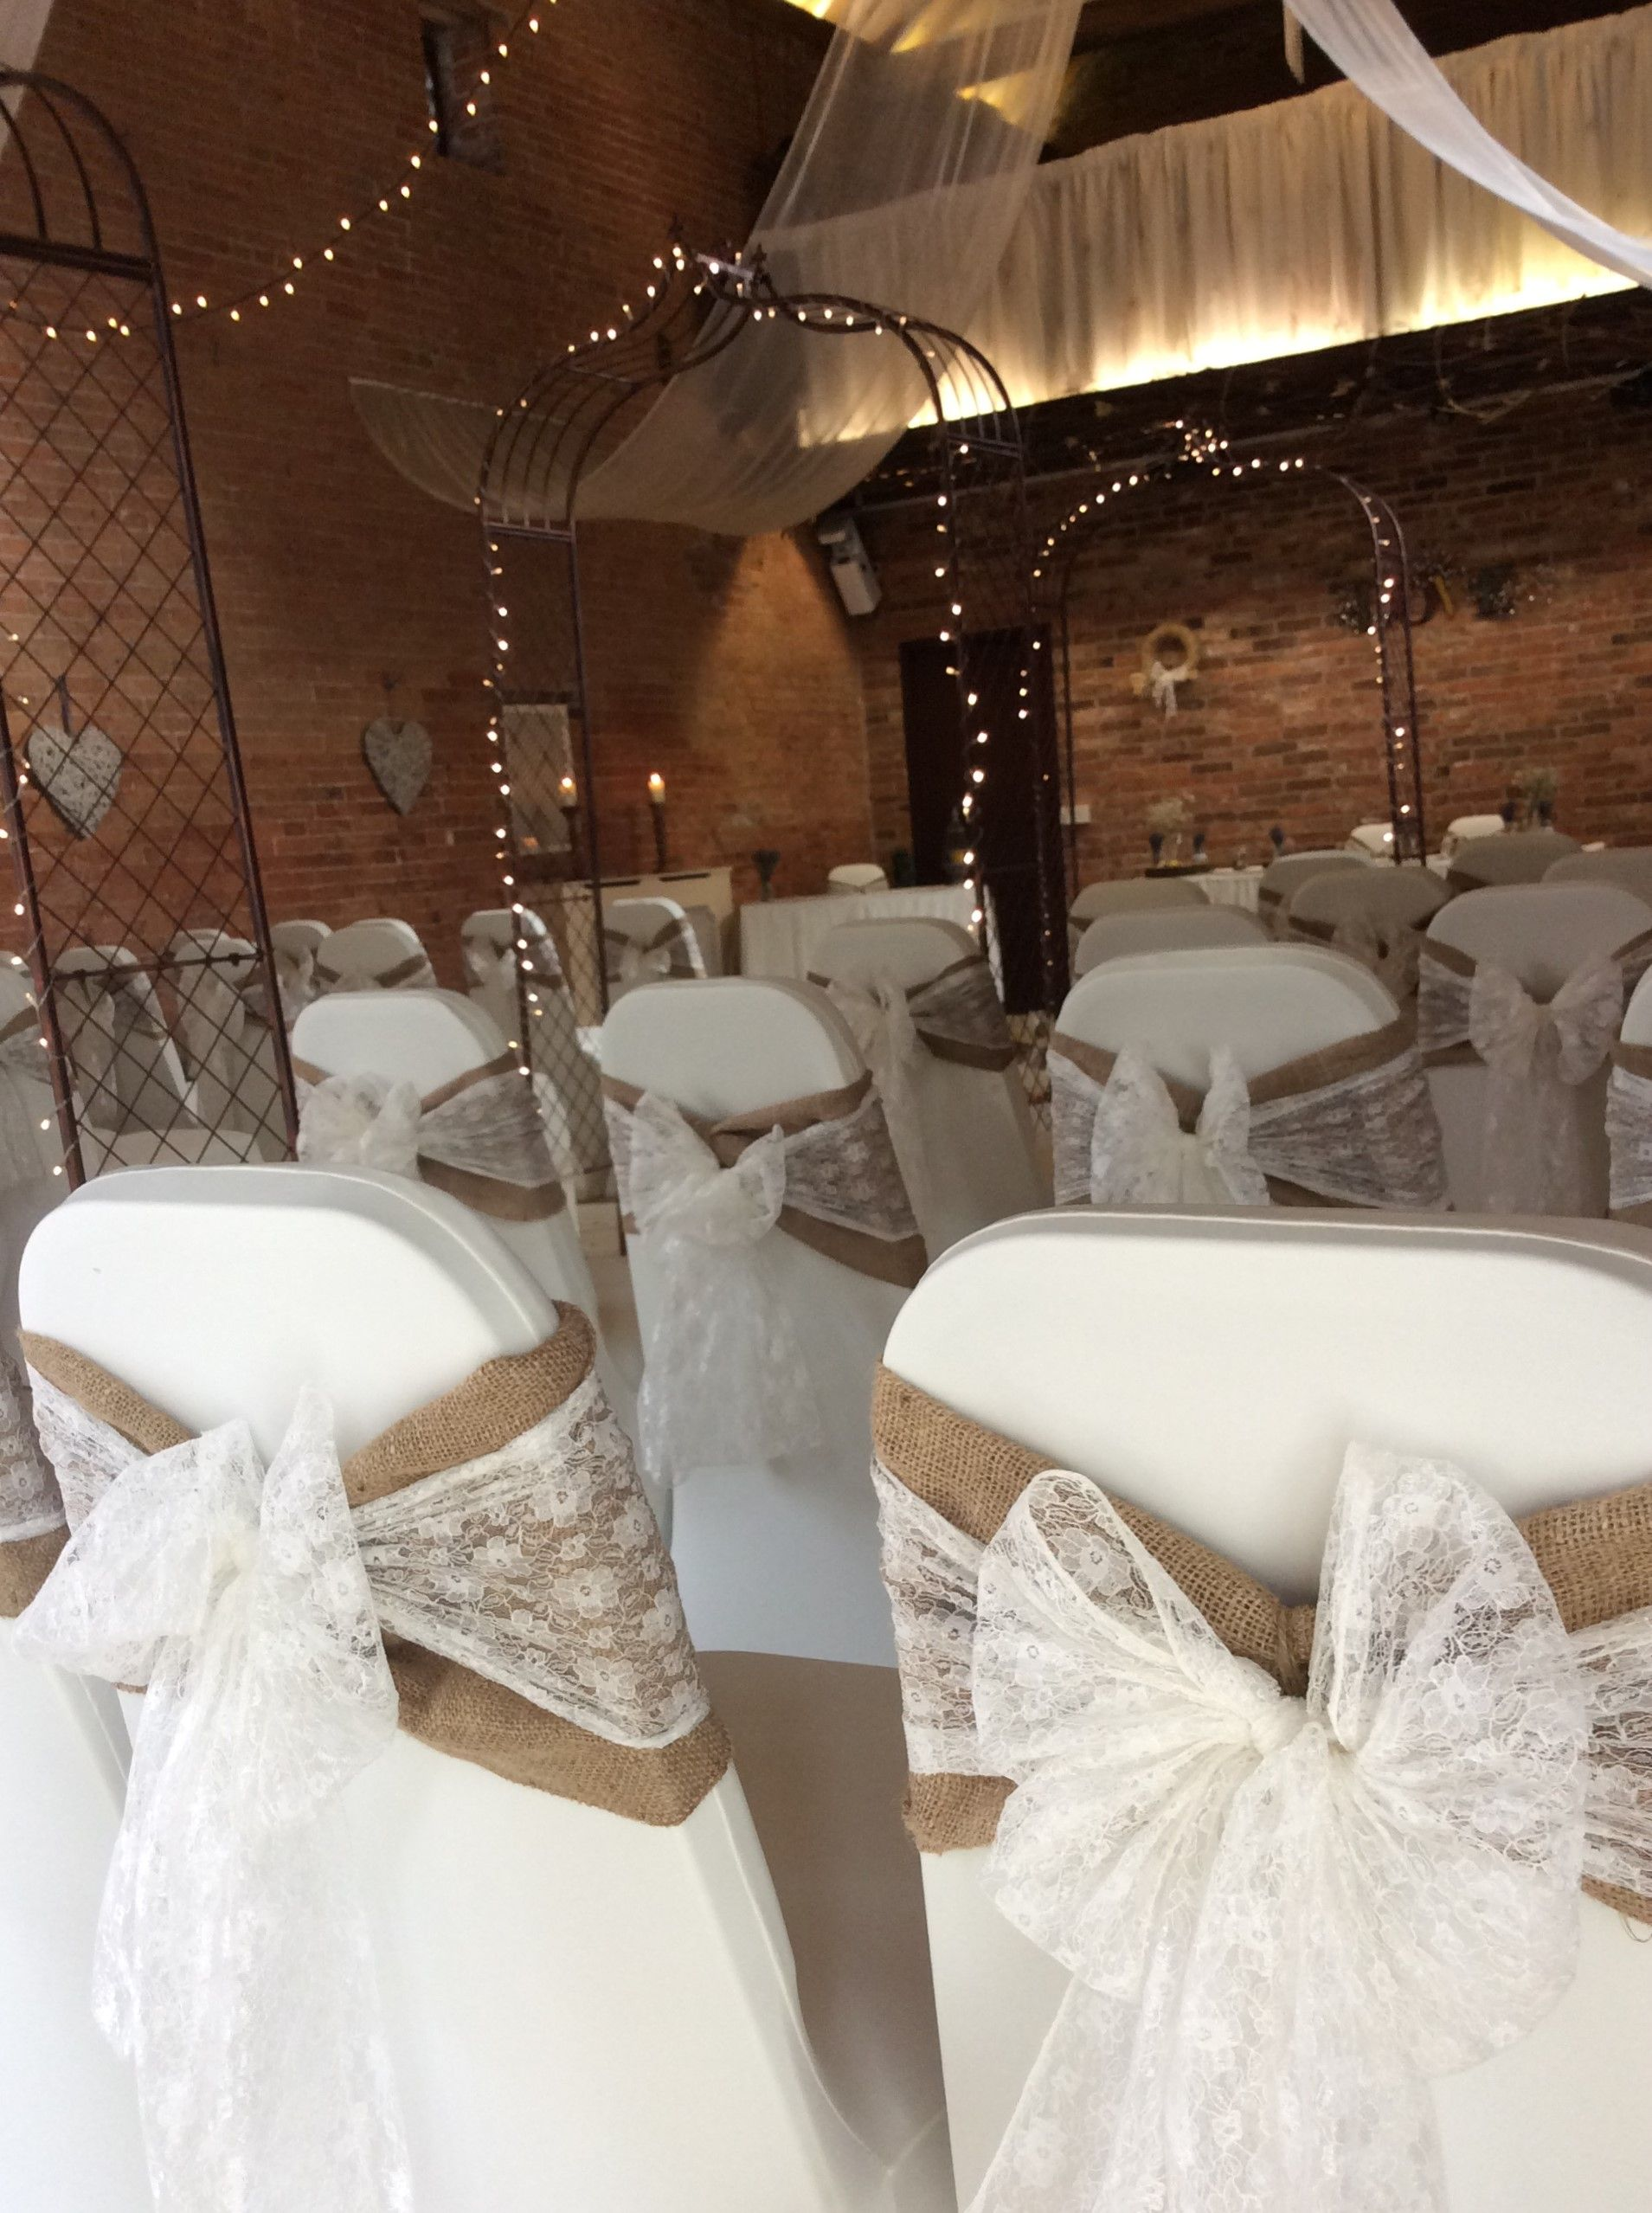 Wedding Chair Covers Yeovil Lift Chairs For Elderly Simple But Effective Hessian And Lace Sashes In A Beautiful Autumn Ceremony